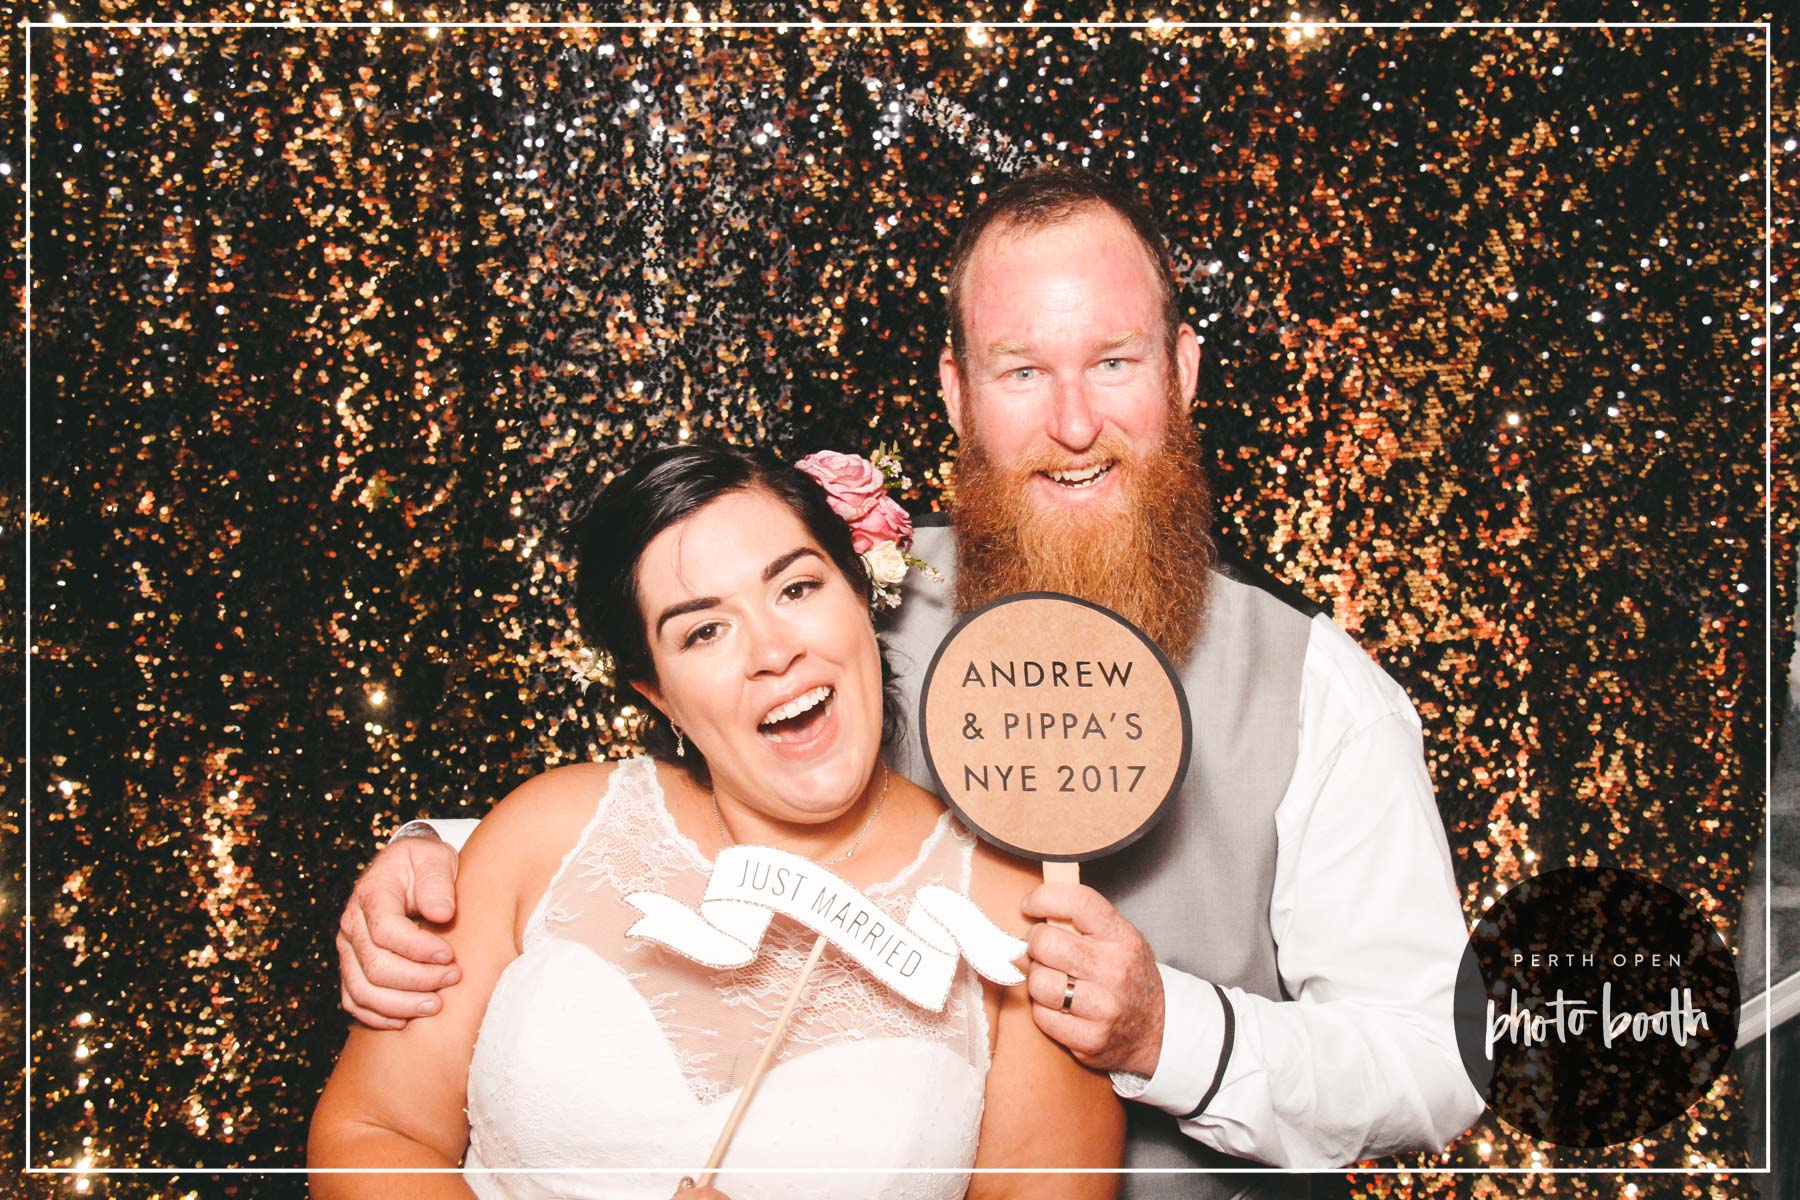 Andrew + Pippa's NYE Wedding - PASSWORD: PROVIDED ON THE TICKETS- ALL LOWERCASE -